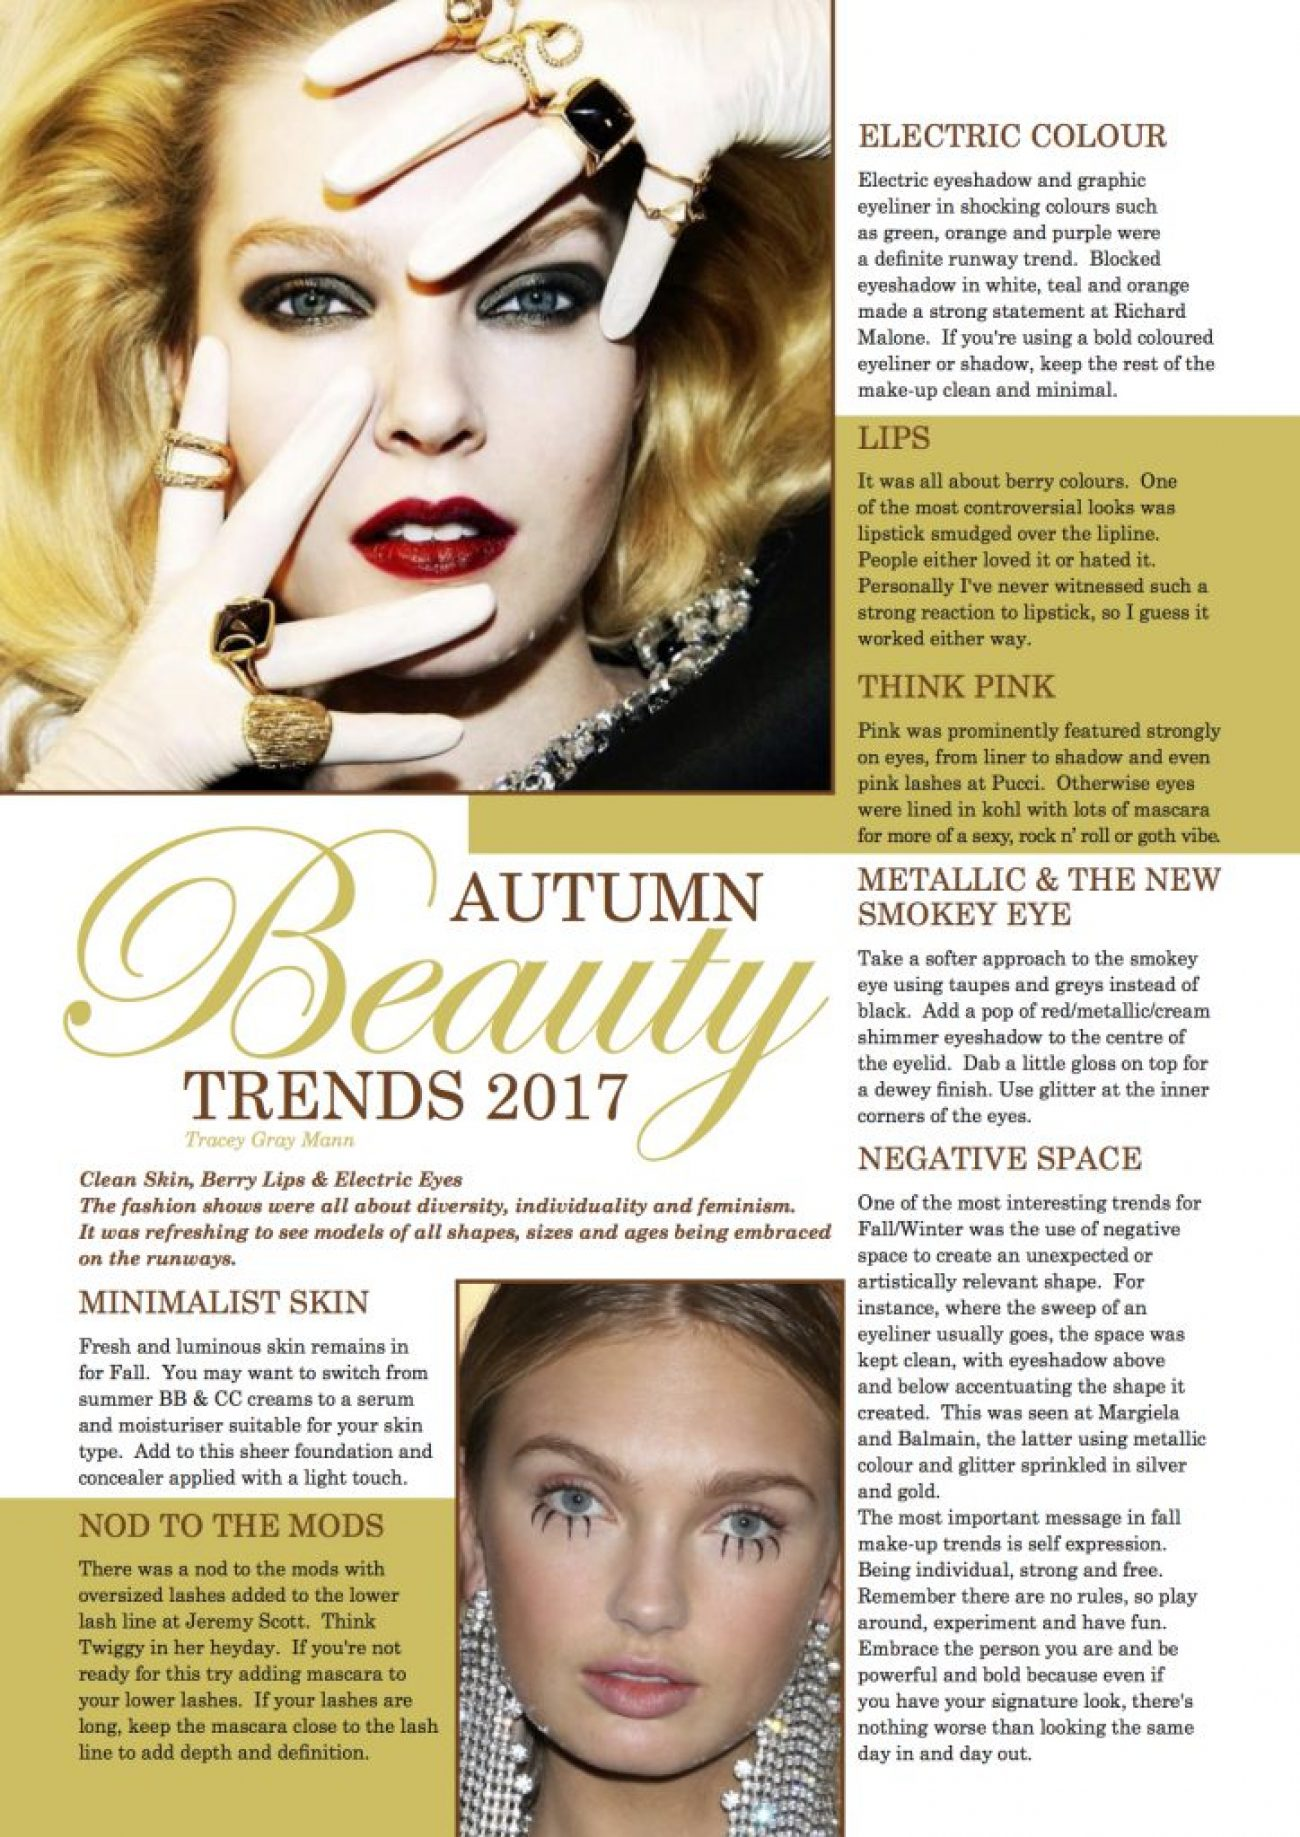 Fall Beauty Trends 2017 written by Tracey Gray Mann